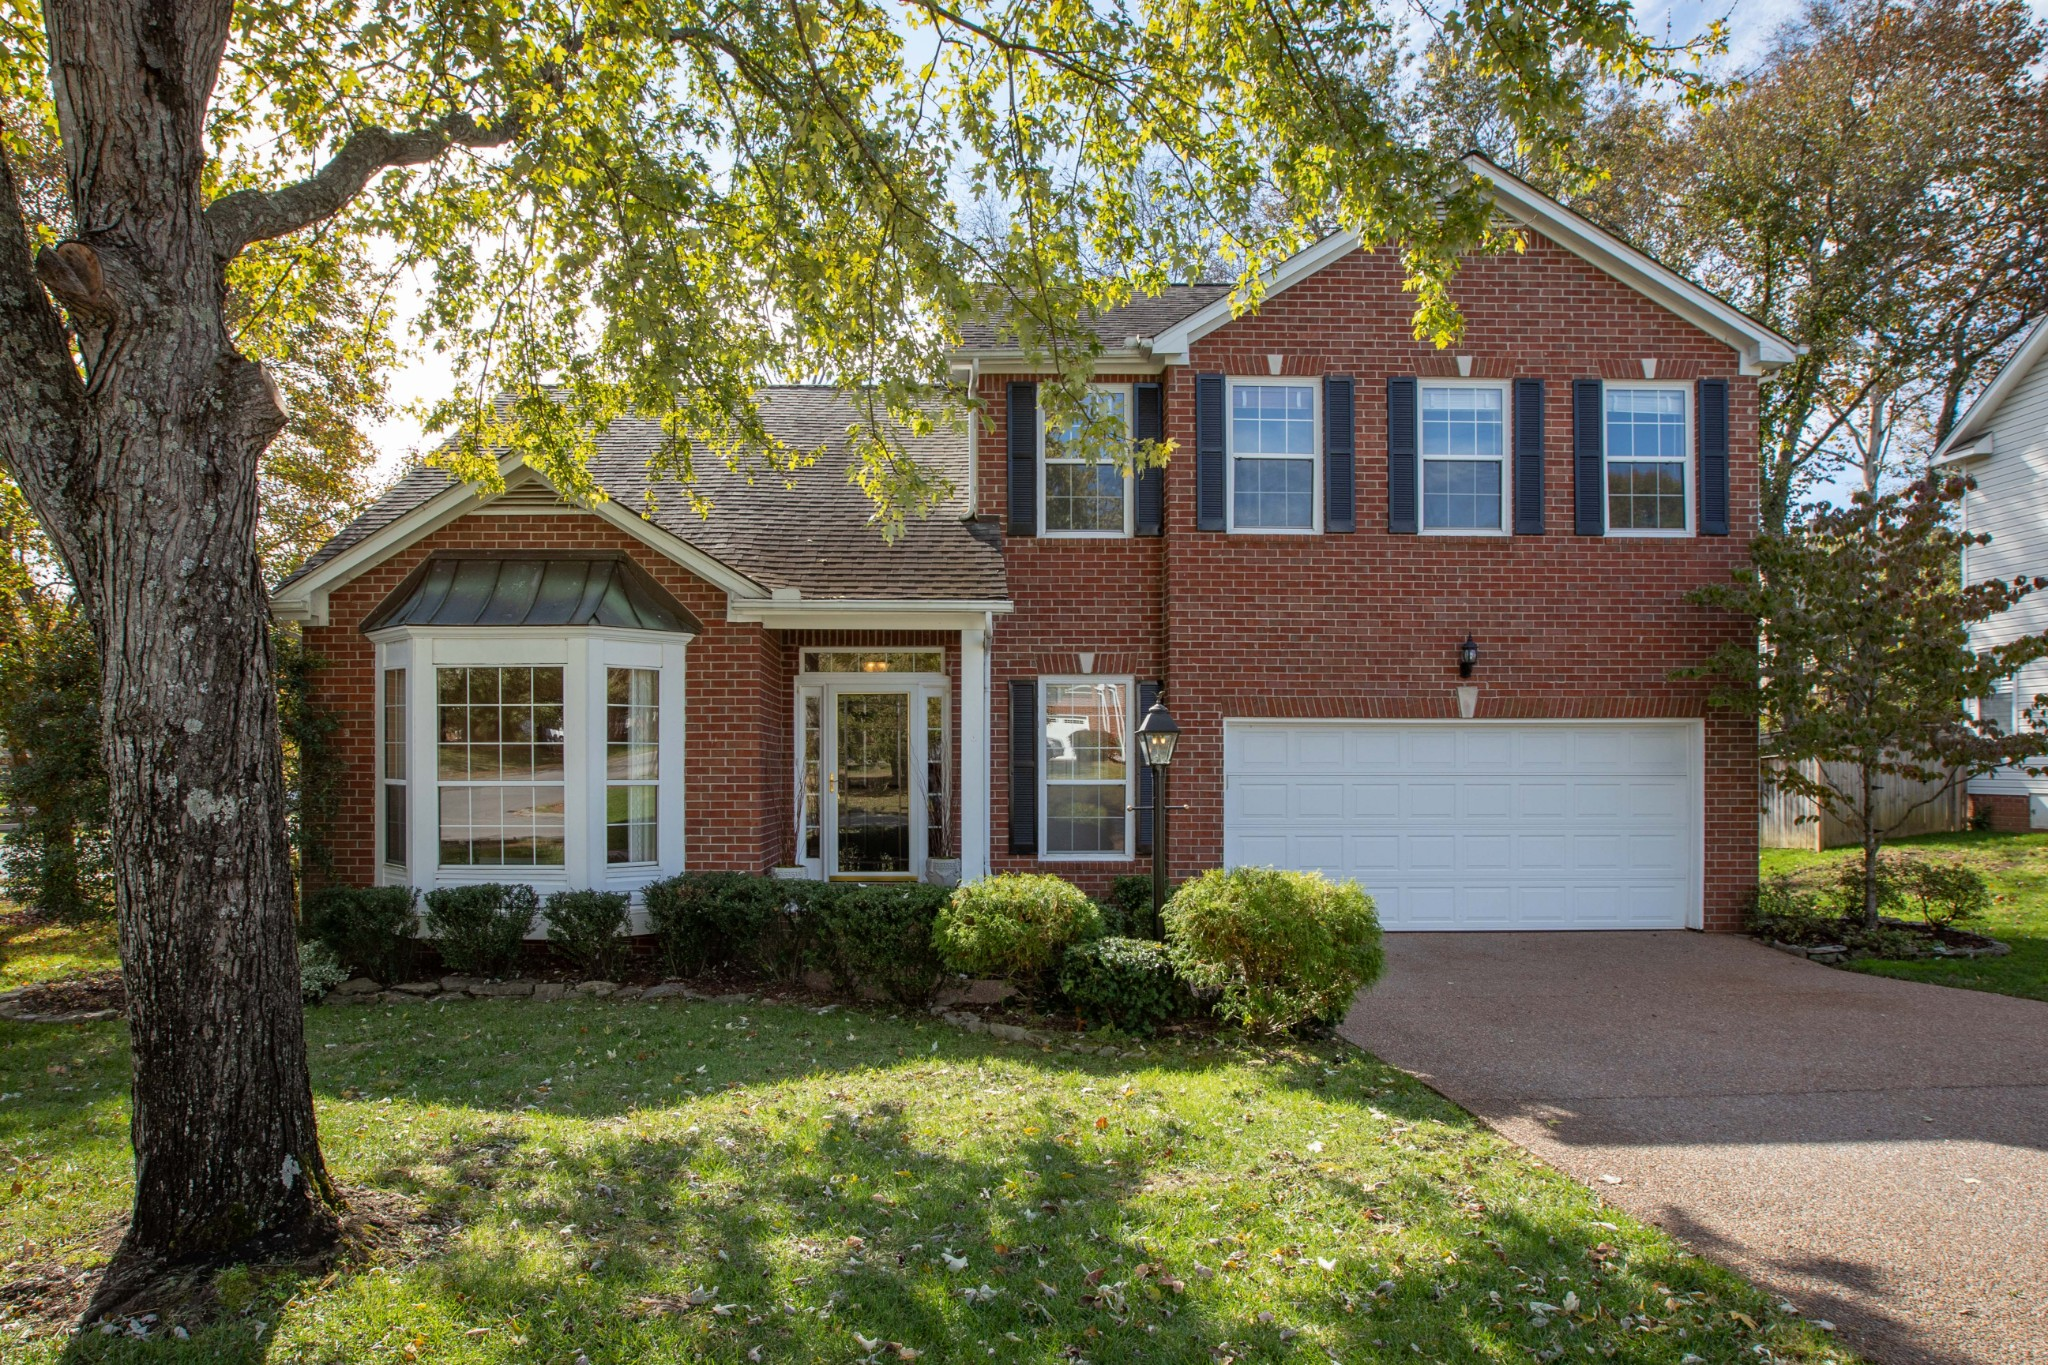 5001 Stonemeade Dr, Bellevue in Davidson County County, TN 37221 Home for Sale